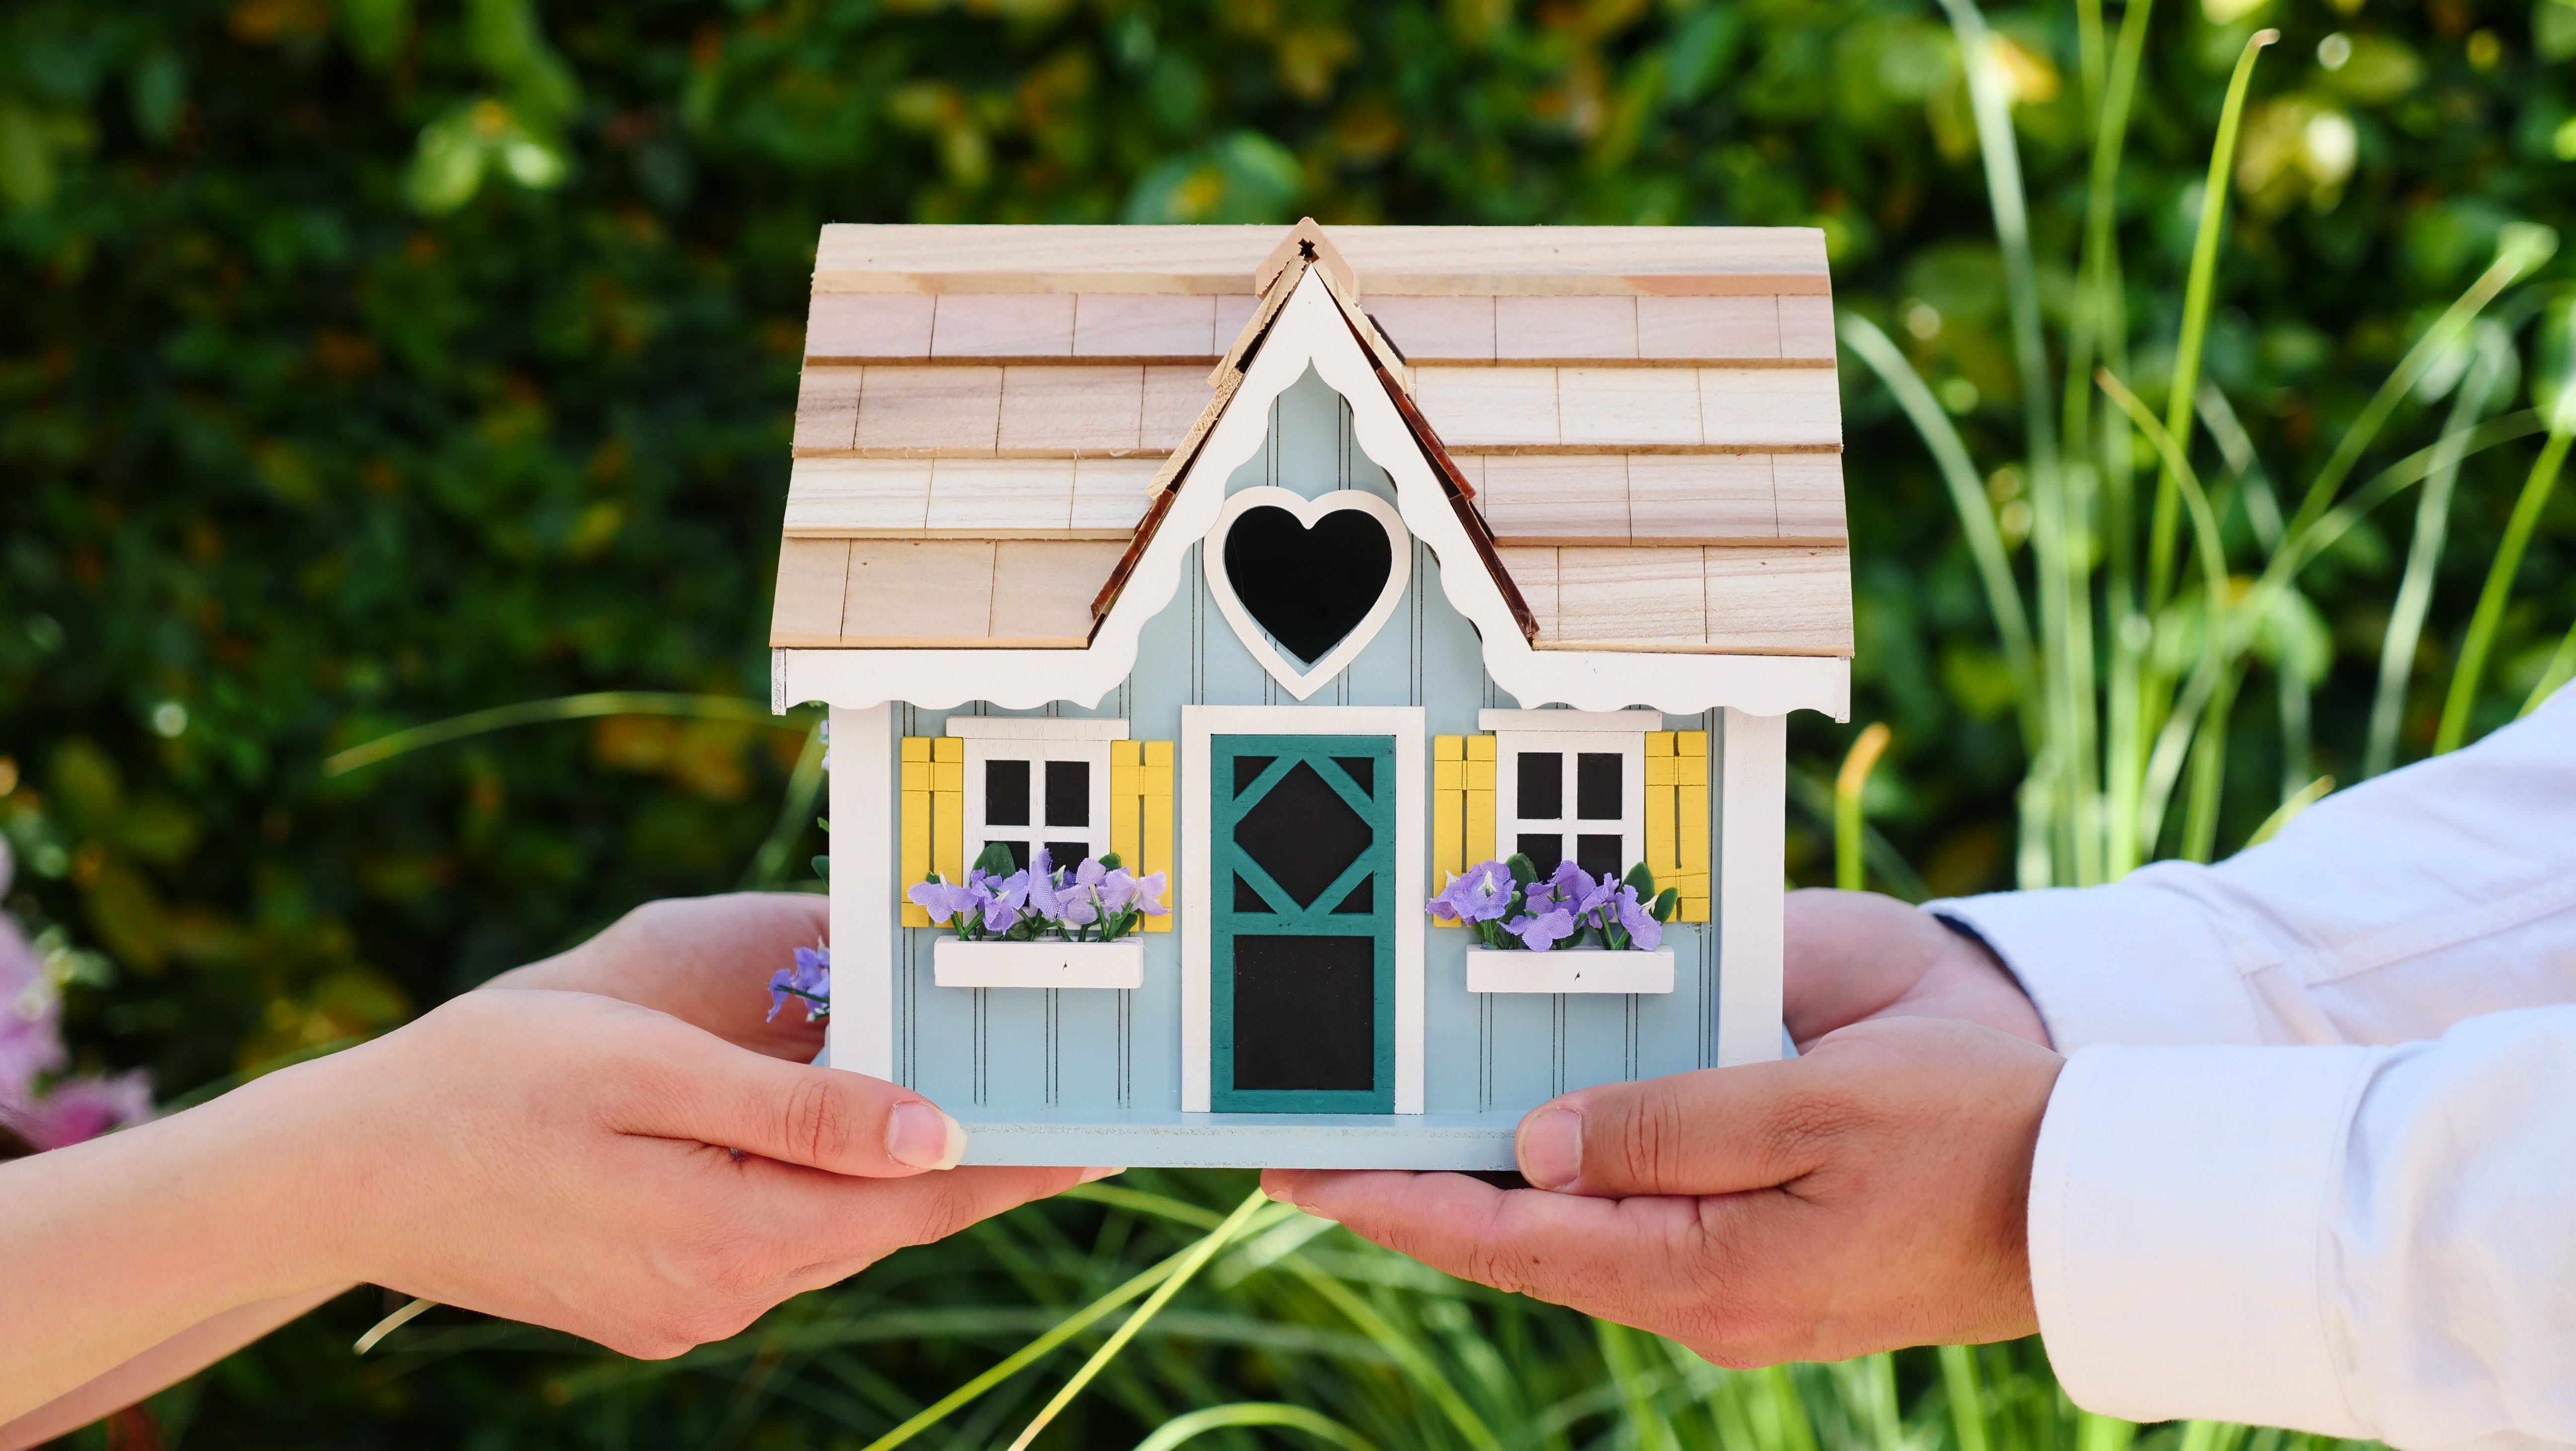 Buying A Home for the First Time? 5 Things To Consider